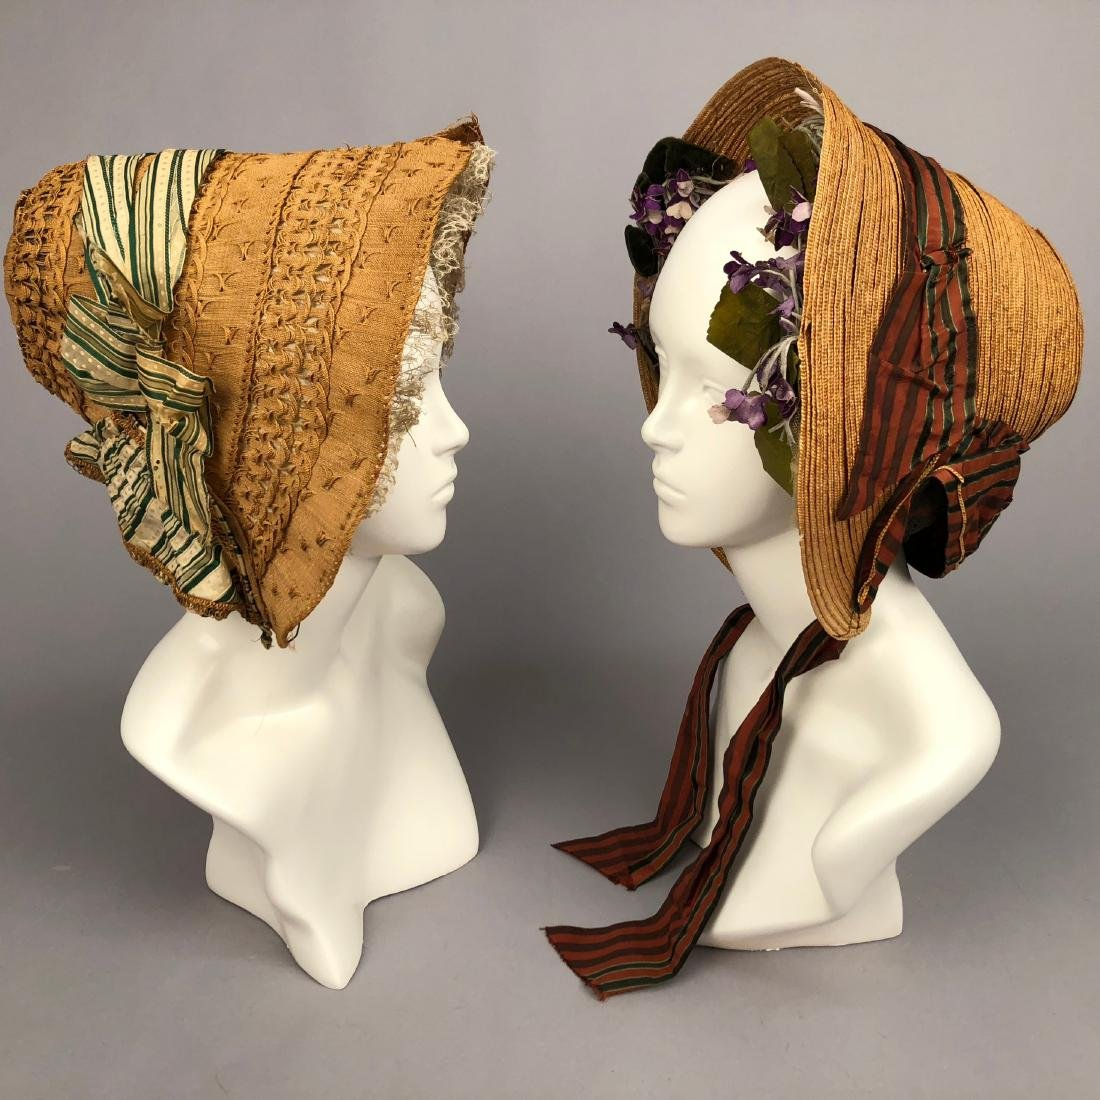 TWO STRAW BONNETS with STRIPED RIBBON, 1840 - 1855